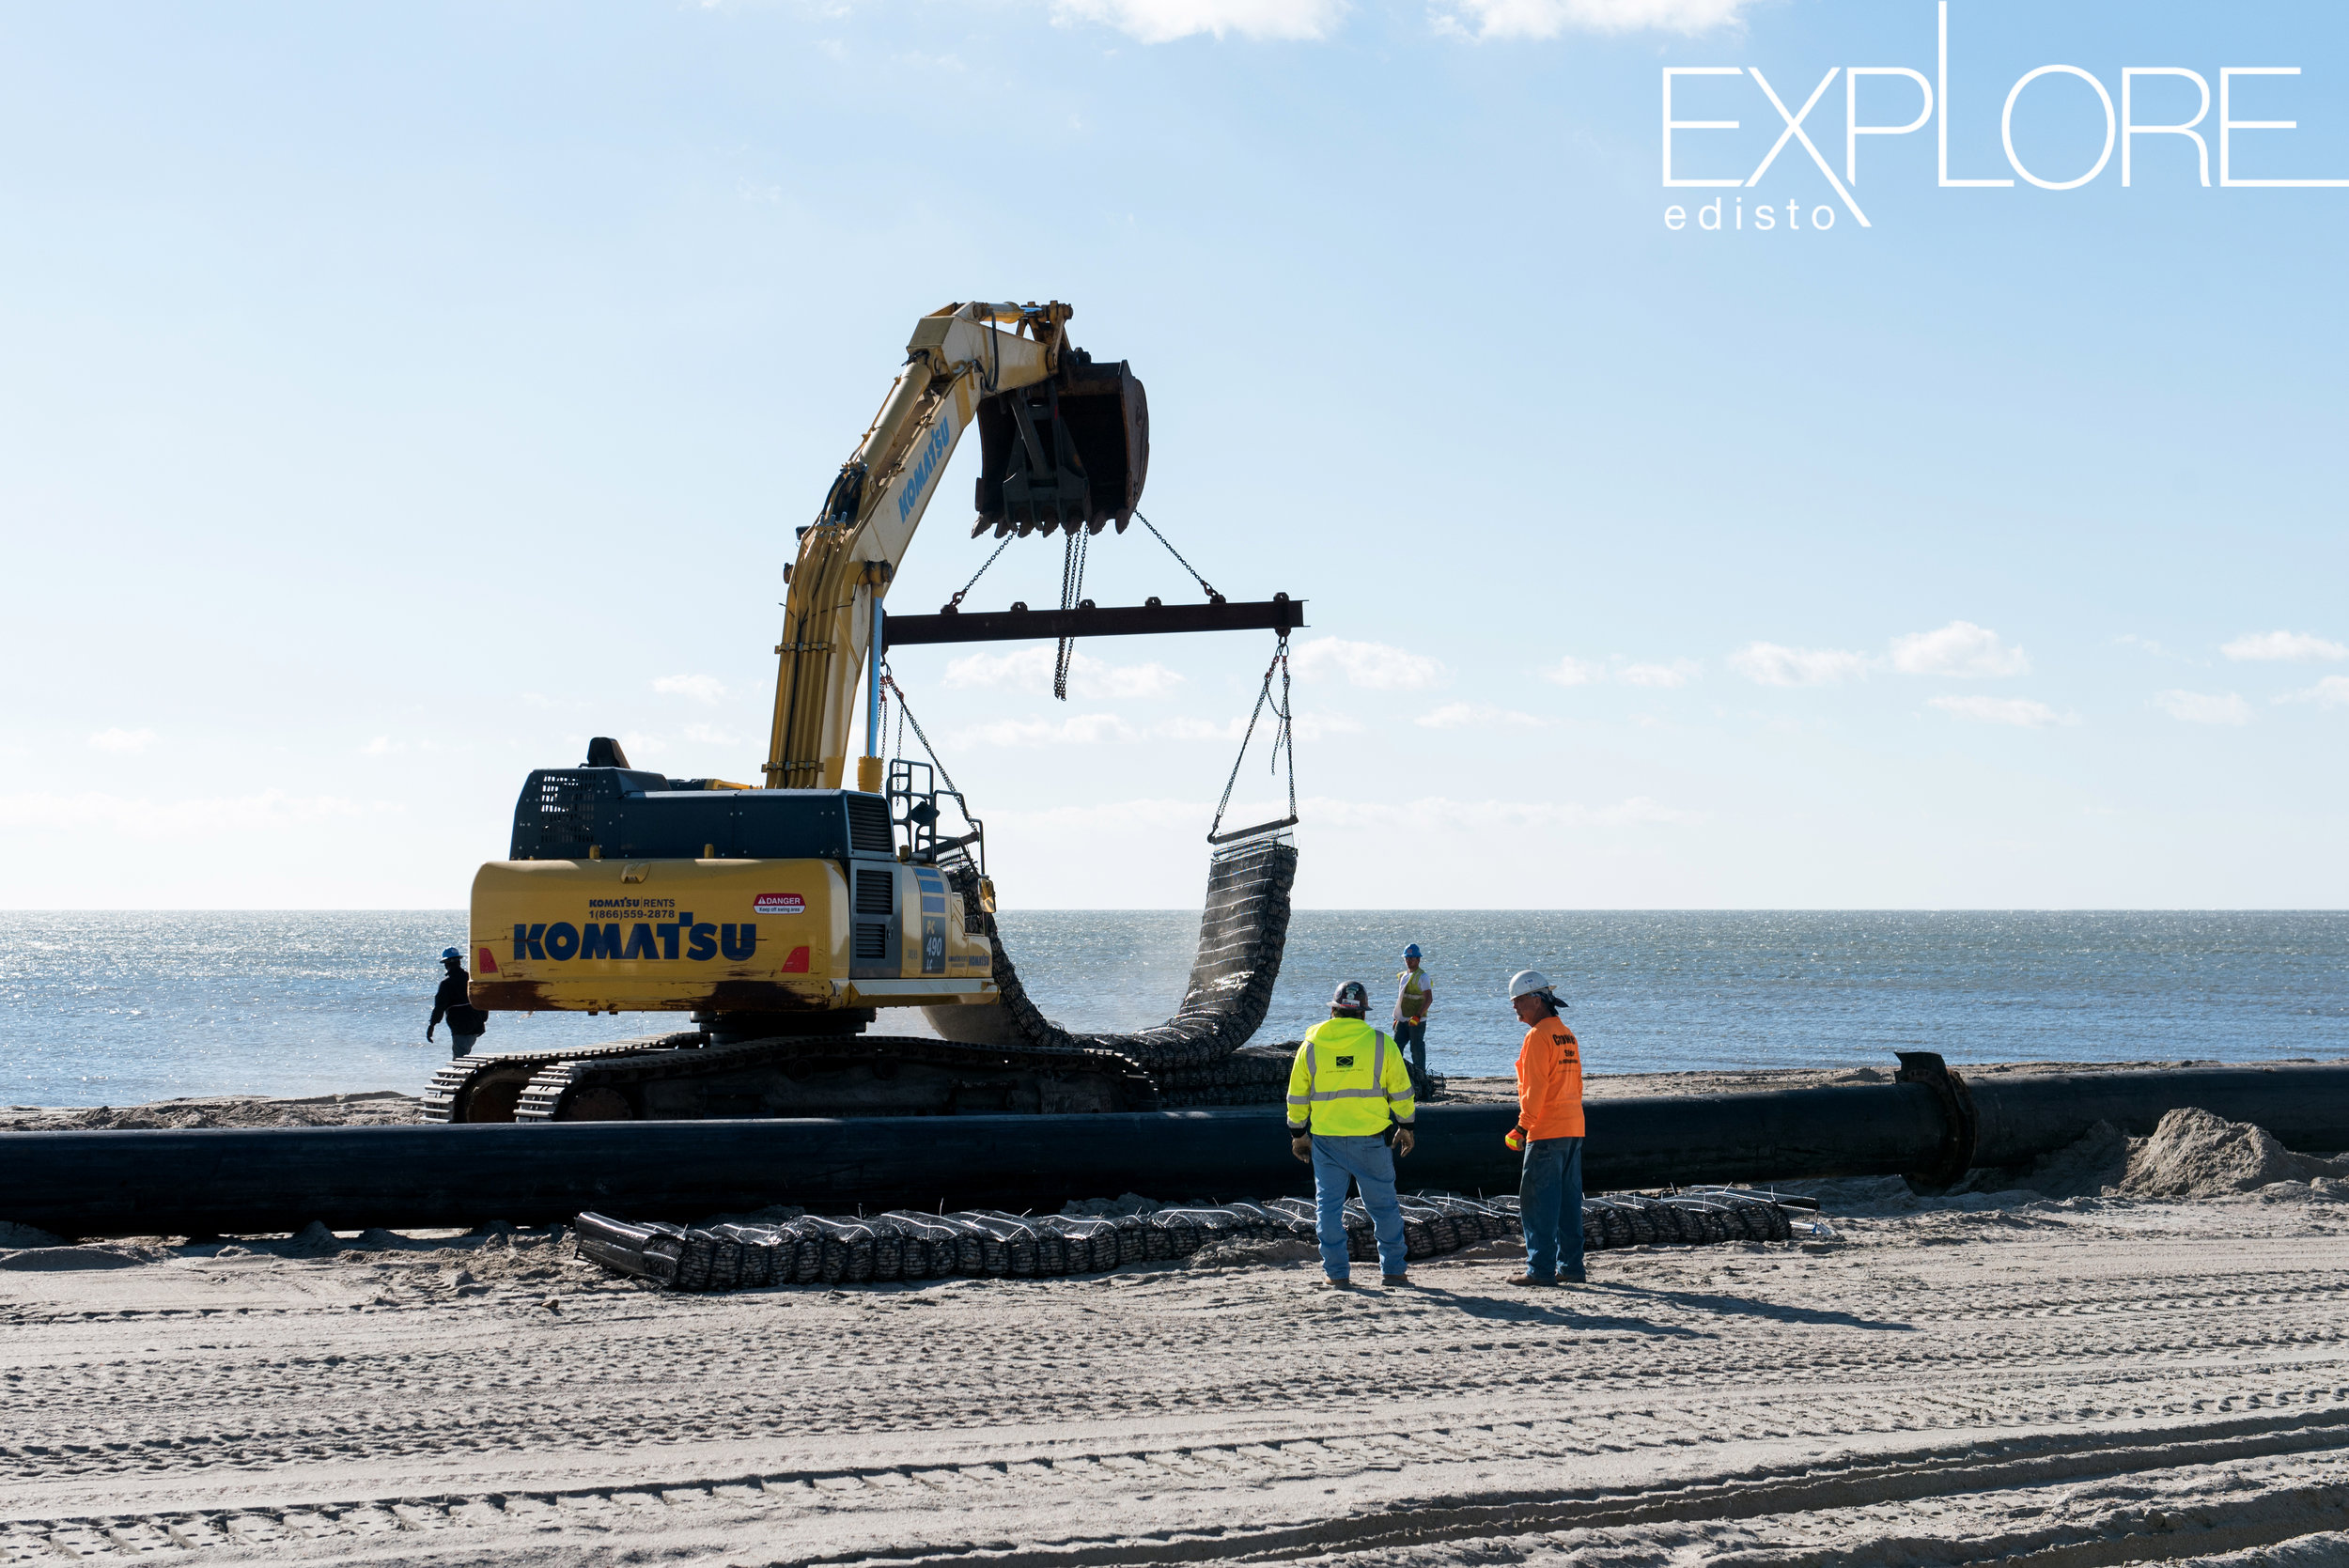 Crane moving rocks on the beach. Workers in foreground wearing neon orange and yellow.